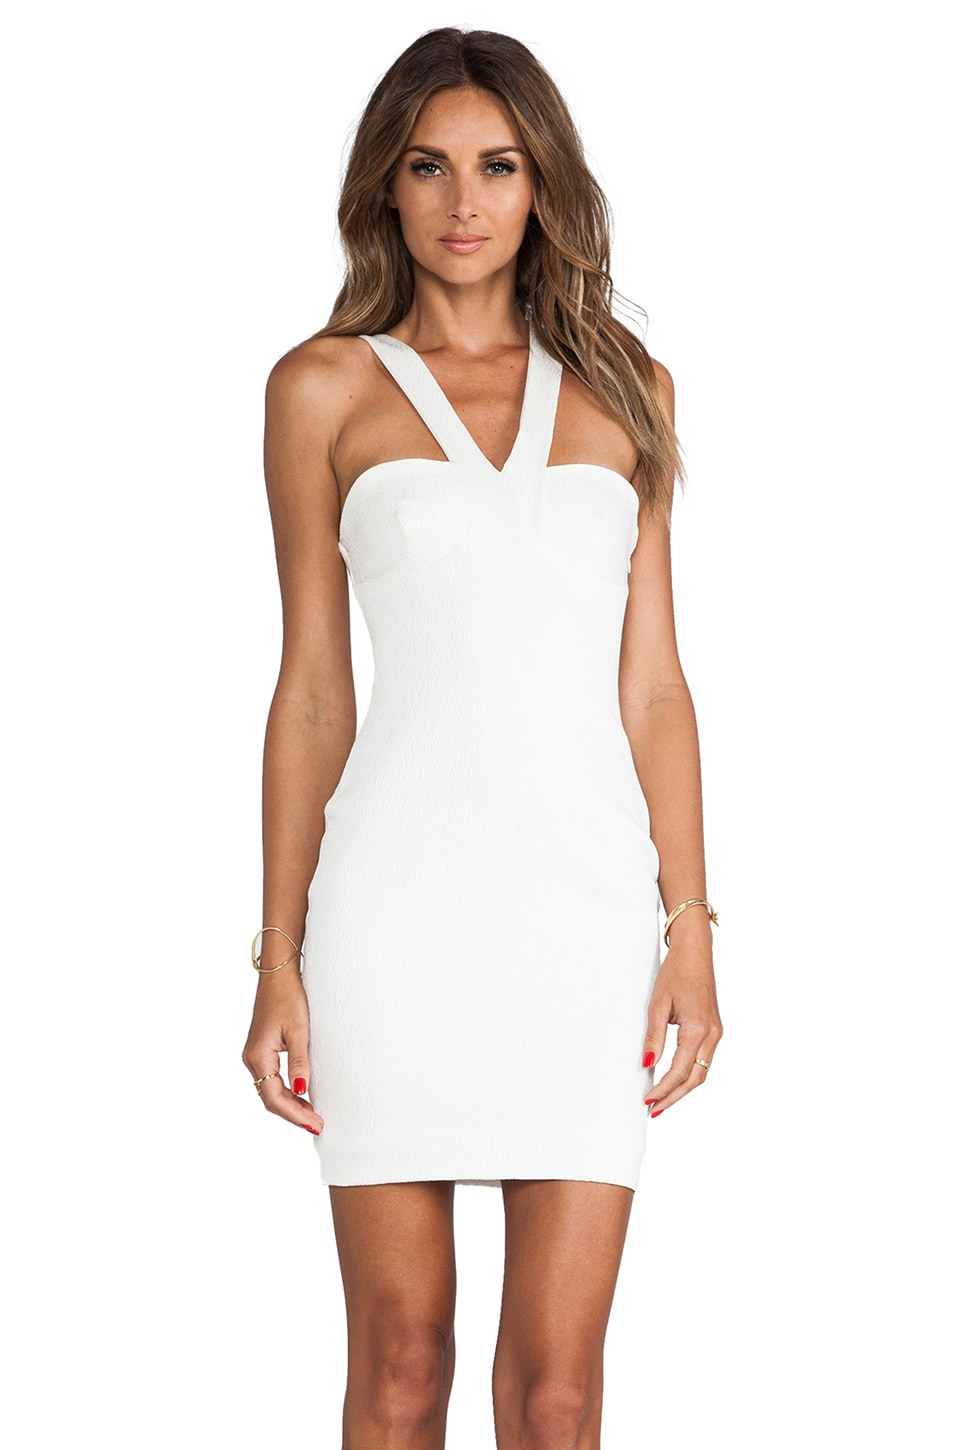 BEC&BRIDGE Isis Dress in Ivory